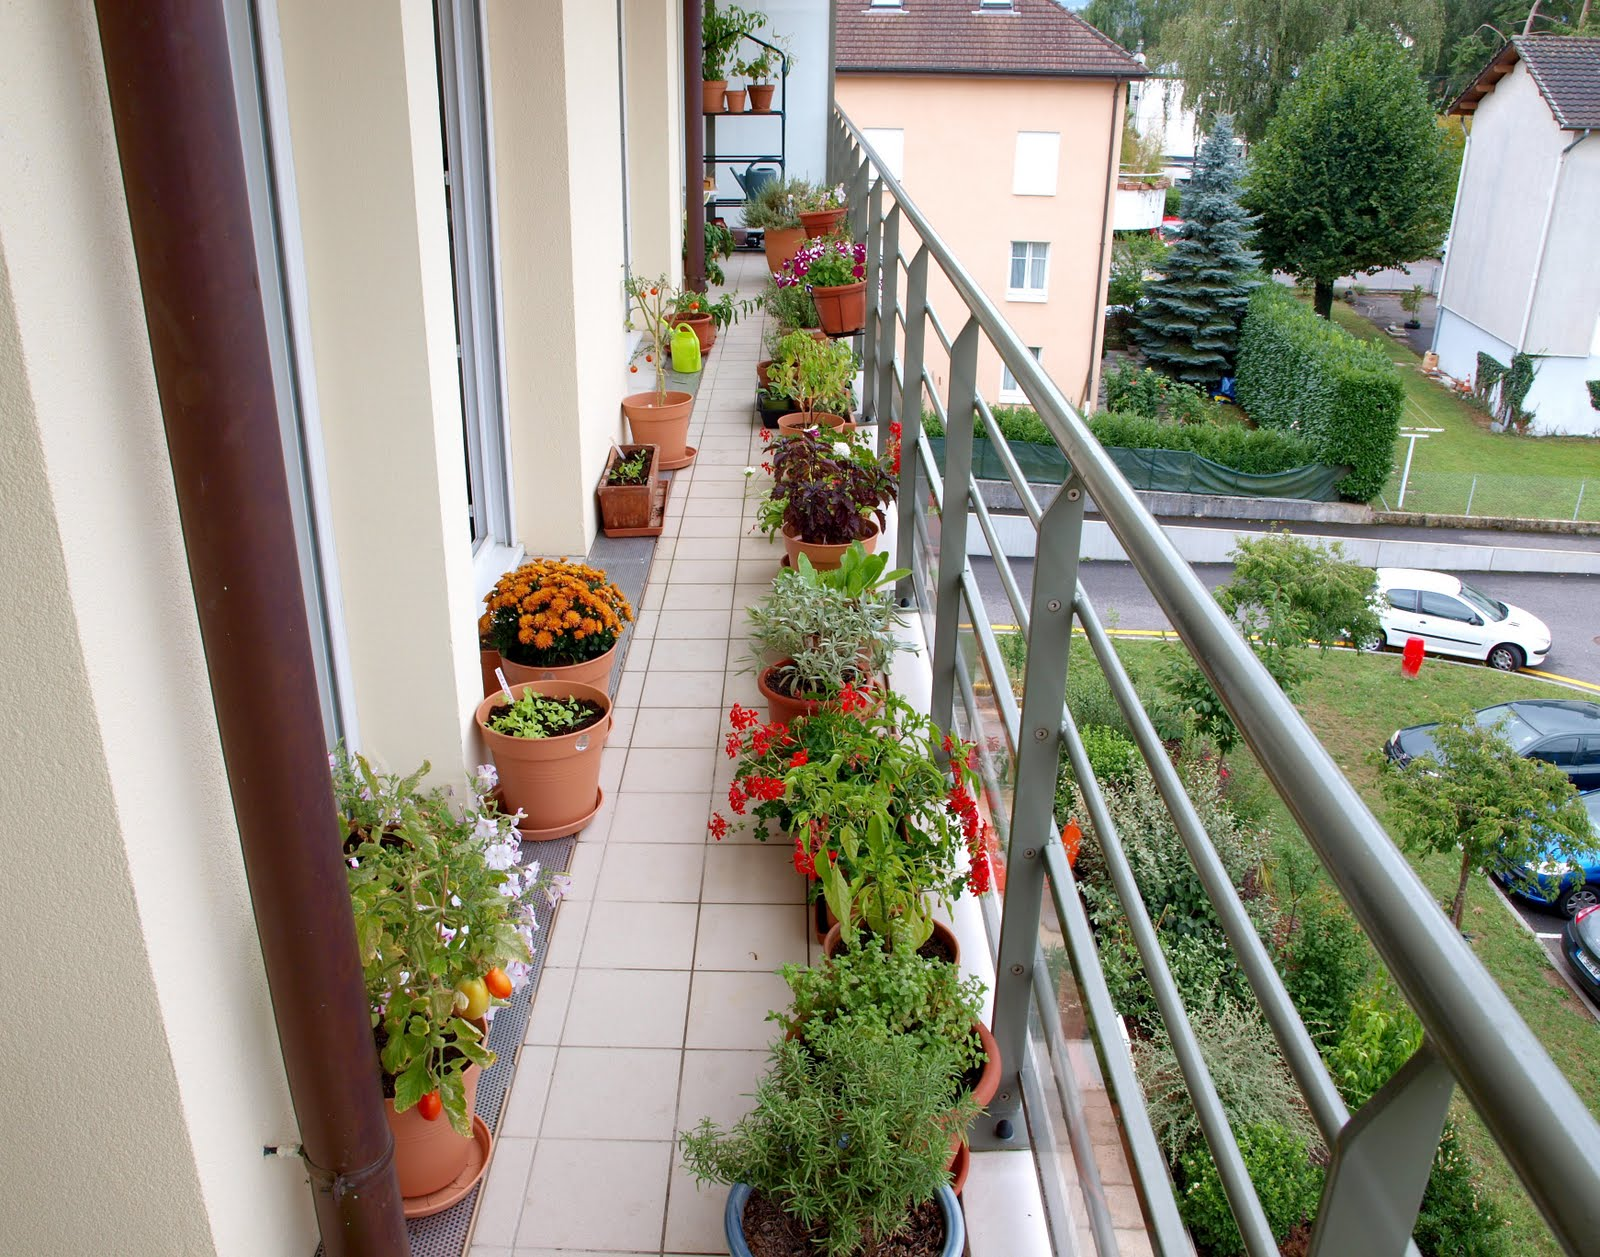 A long and narrow balcony garden